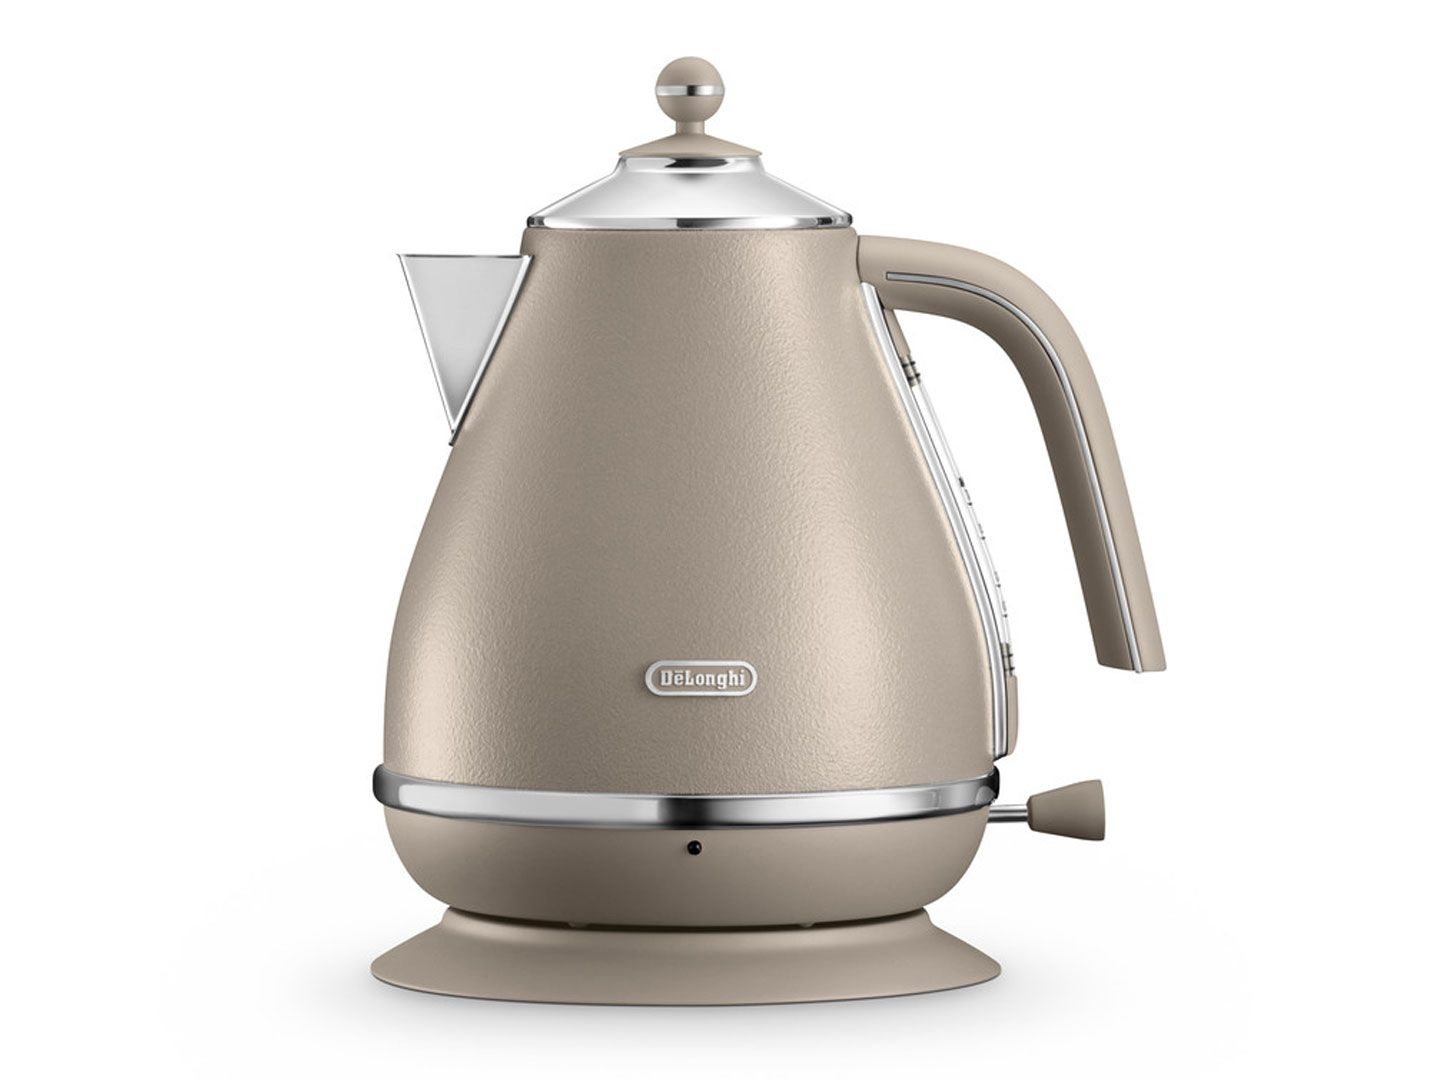 Pin by sarah holland on Home Kettle, Electric kettle